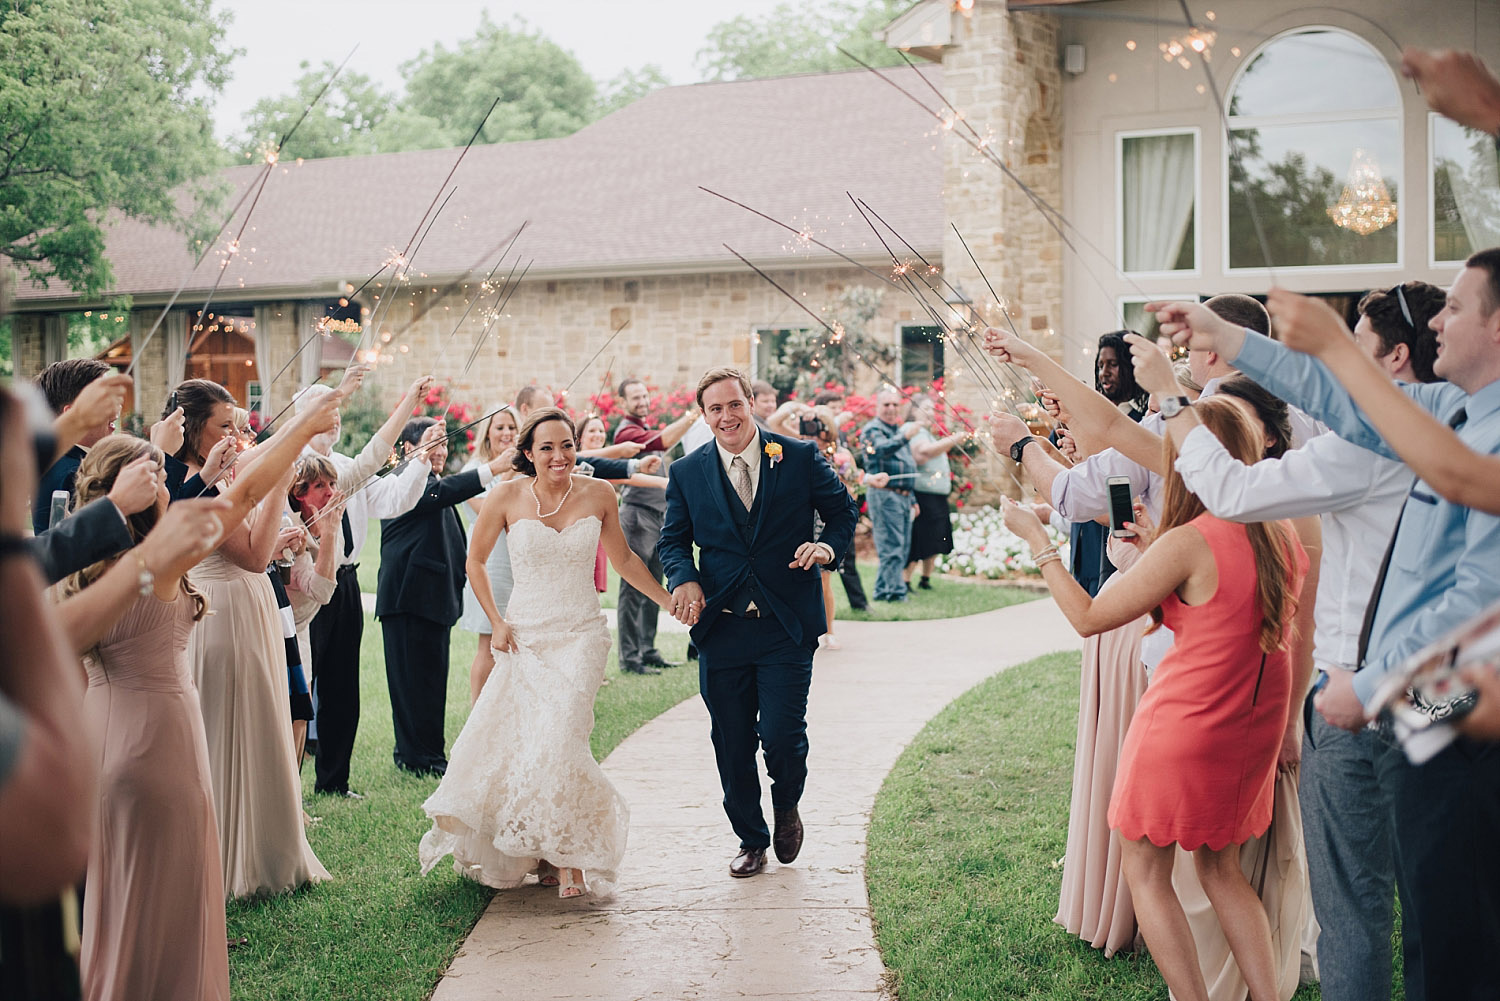 The Orchard Azle wedding sparkler exit during the day